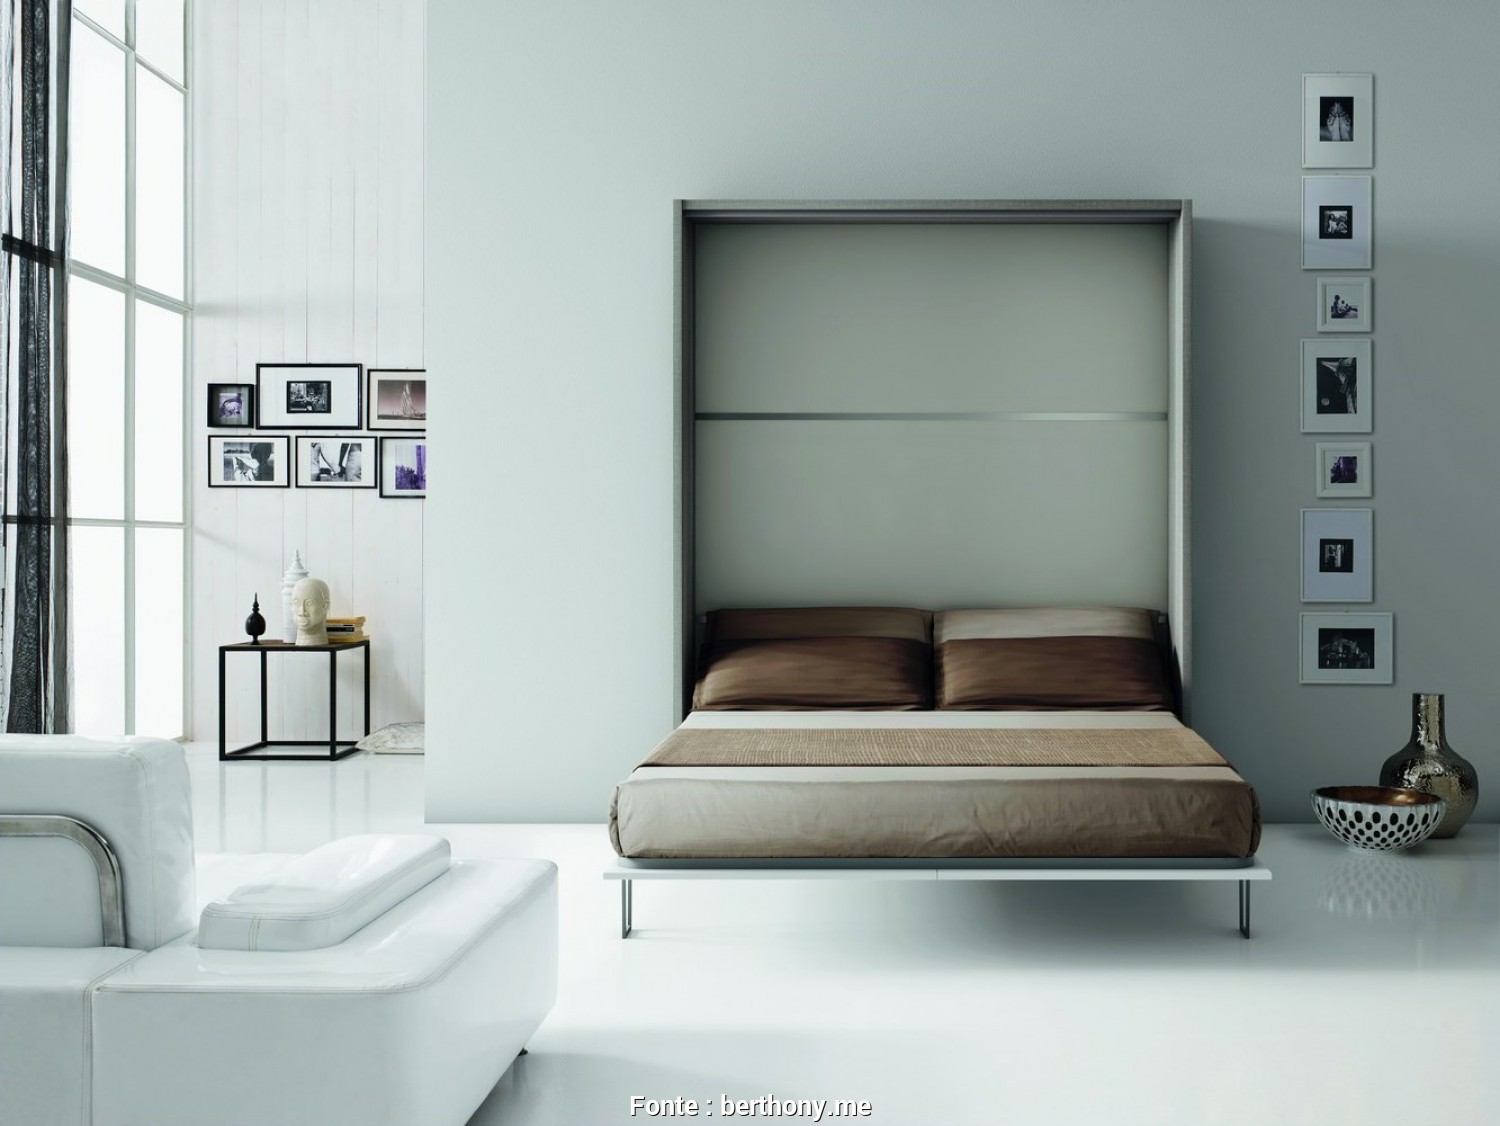 Letto Matrimoniale A Scomparsa Ikea Grande 5 Ikea Hemnes Letto Matrimoniale Keever For Congress